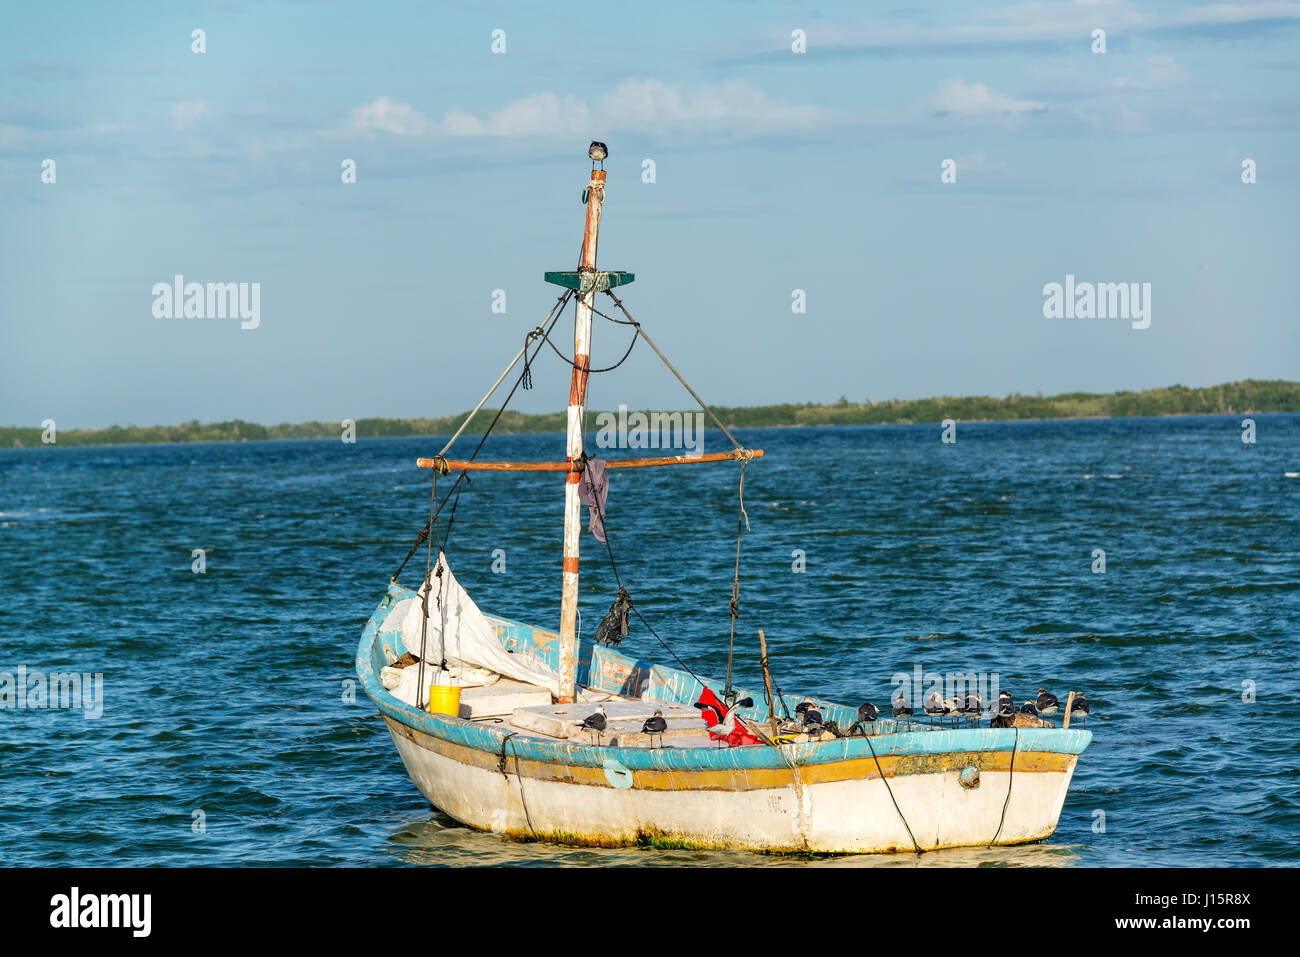 Old worn out boat and seascape in Rio Lagartos, Mexico - Stock Image